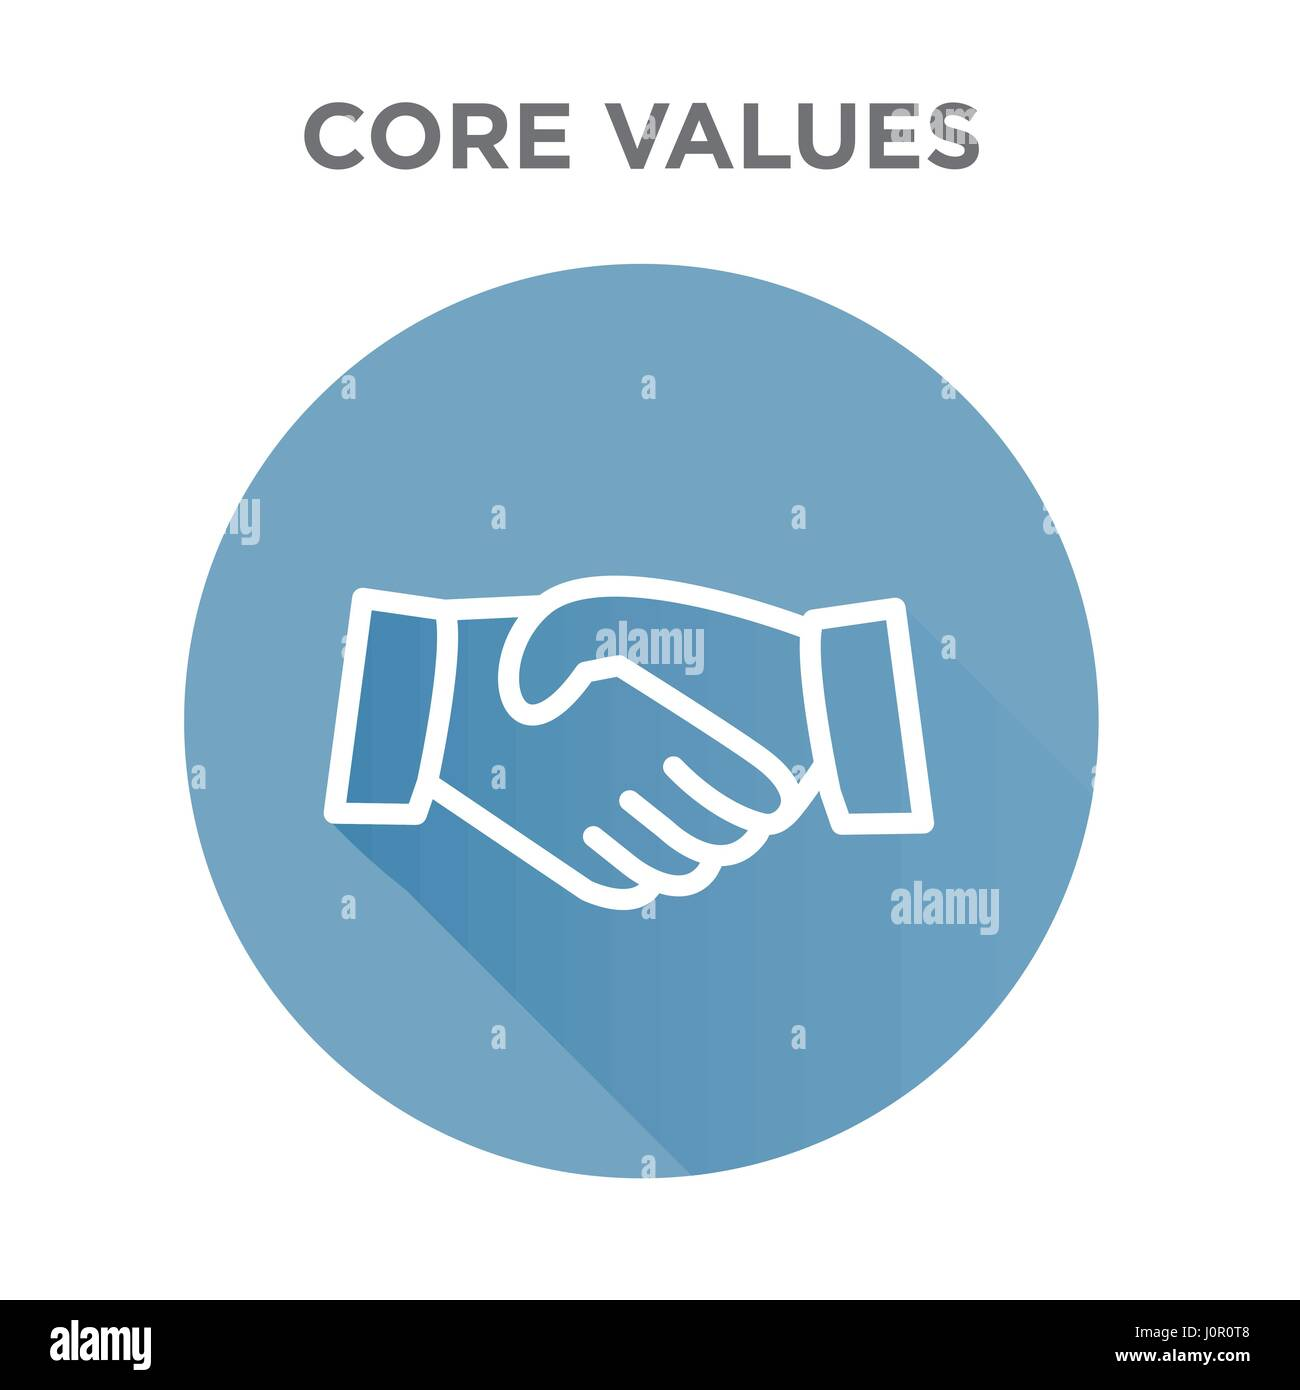 Core Values Icon with Handshake or Shaking Hands - Stock Vector